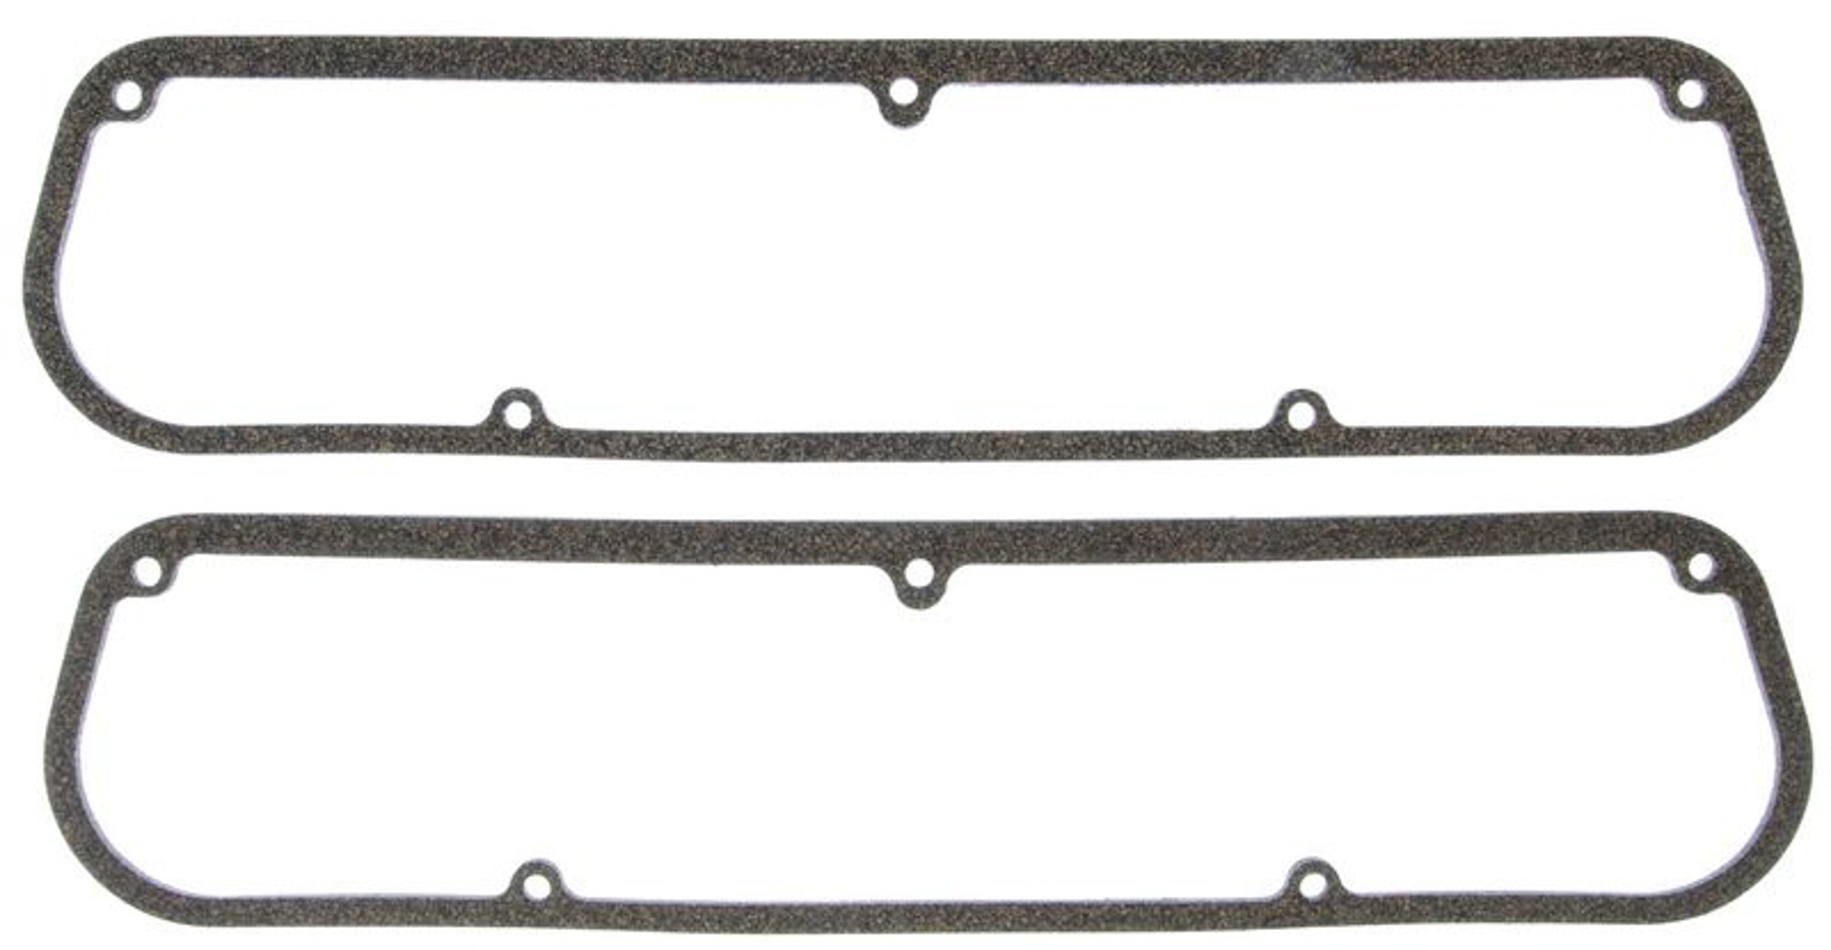 Valve Cover Gasket Set SBM 273-360 .125 Thick